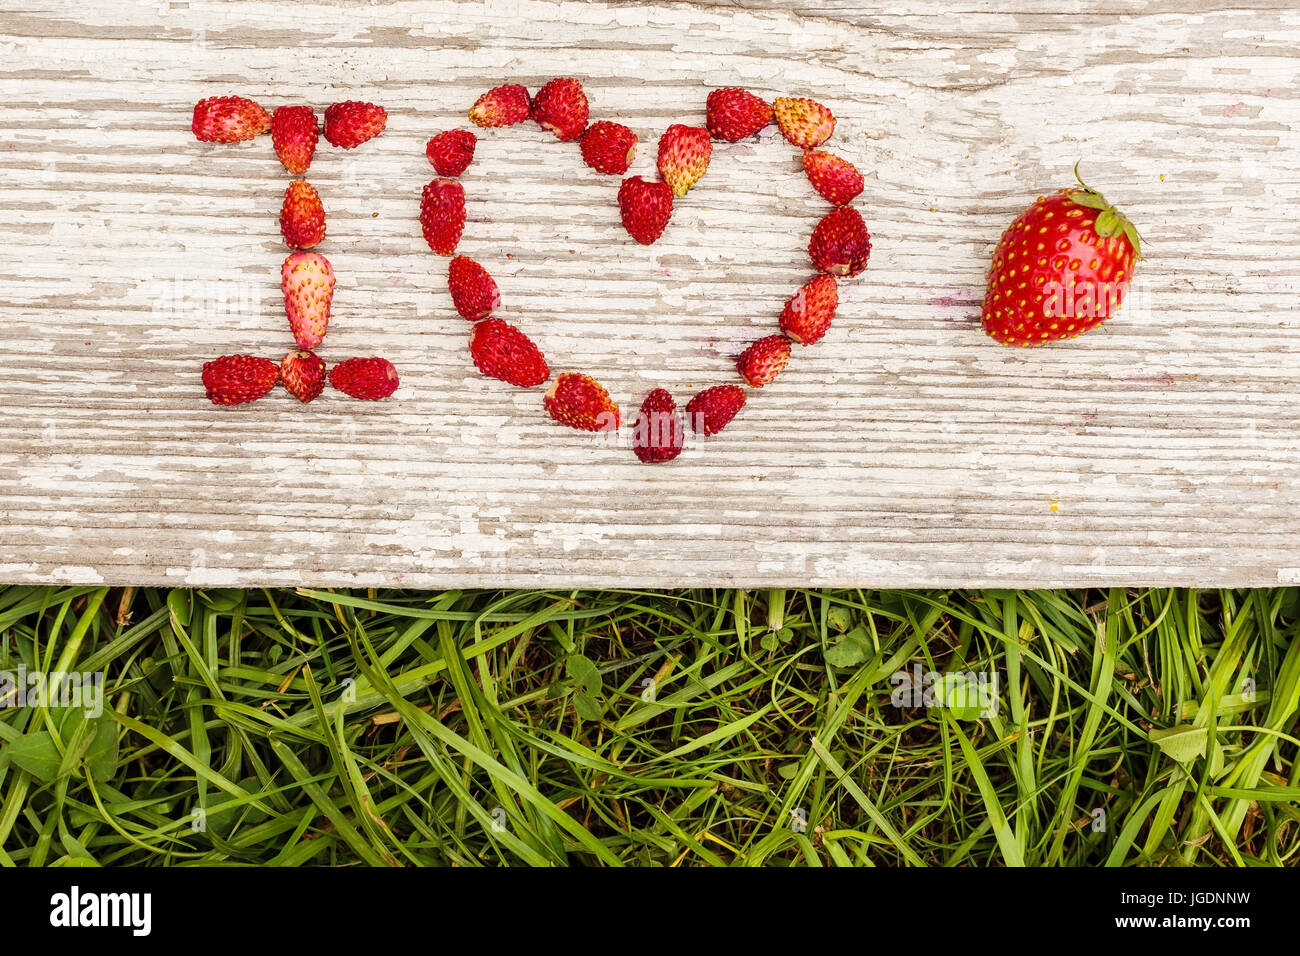 Strawberries are laid out in the letters on a background of green grass and board. - Stock Image